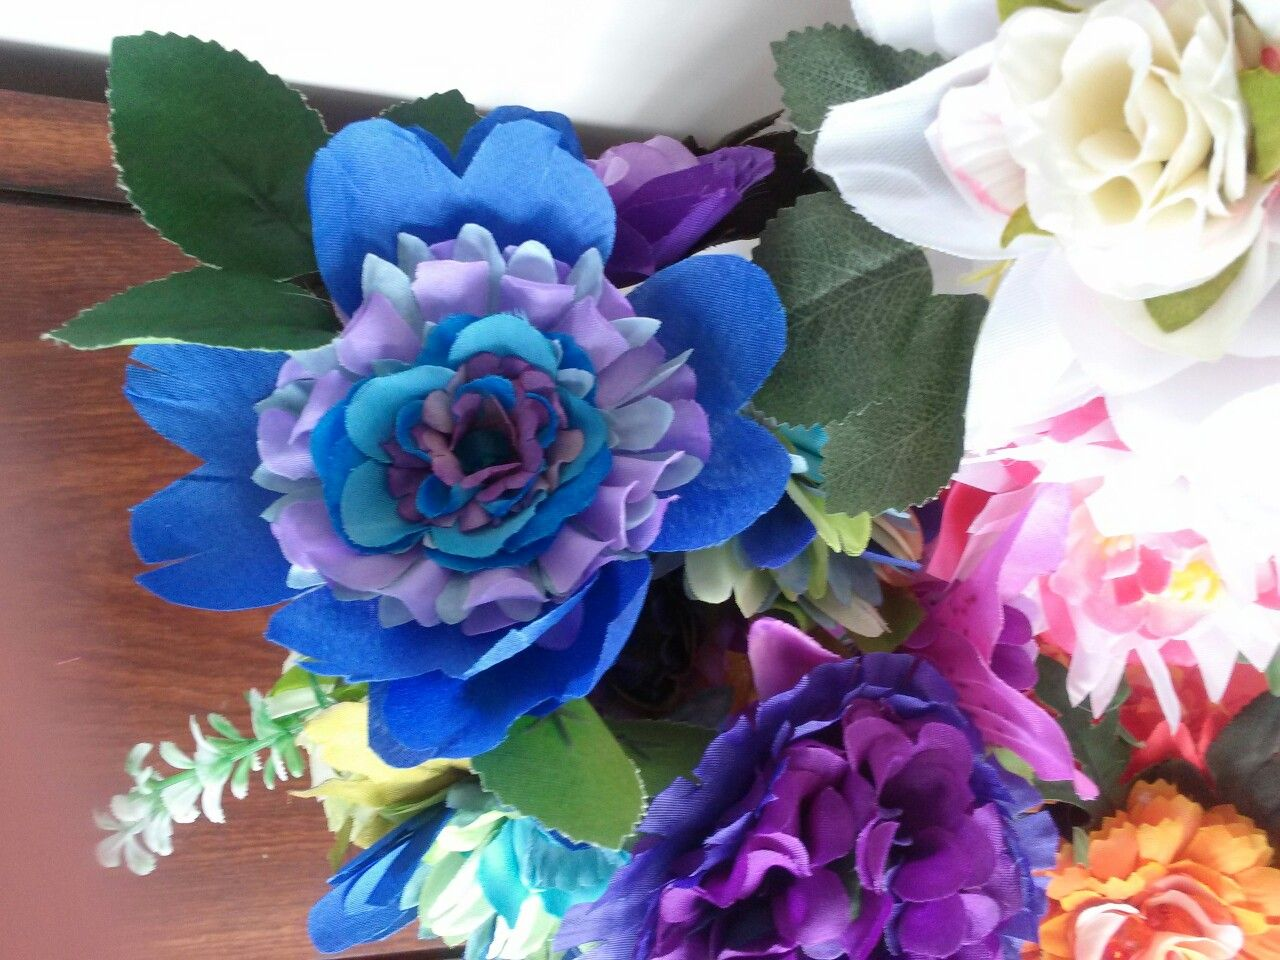 Upcycled from cheap dollar store artificial flowers devan upcycled from cheap dollar store artificial flowers izmirmasajfo